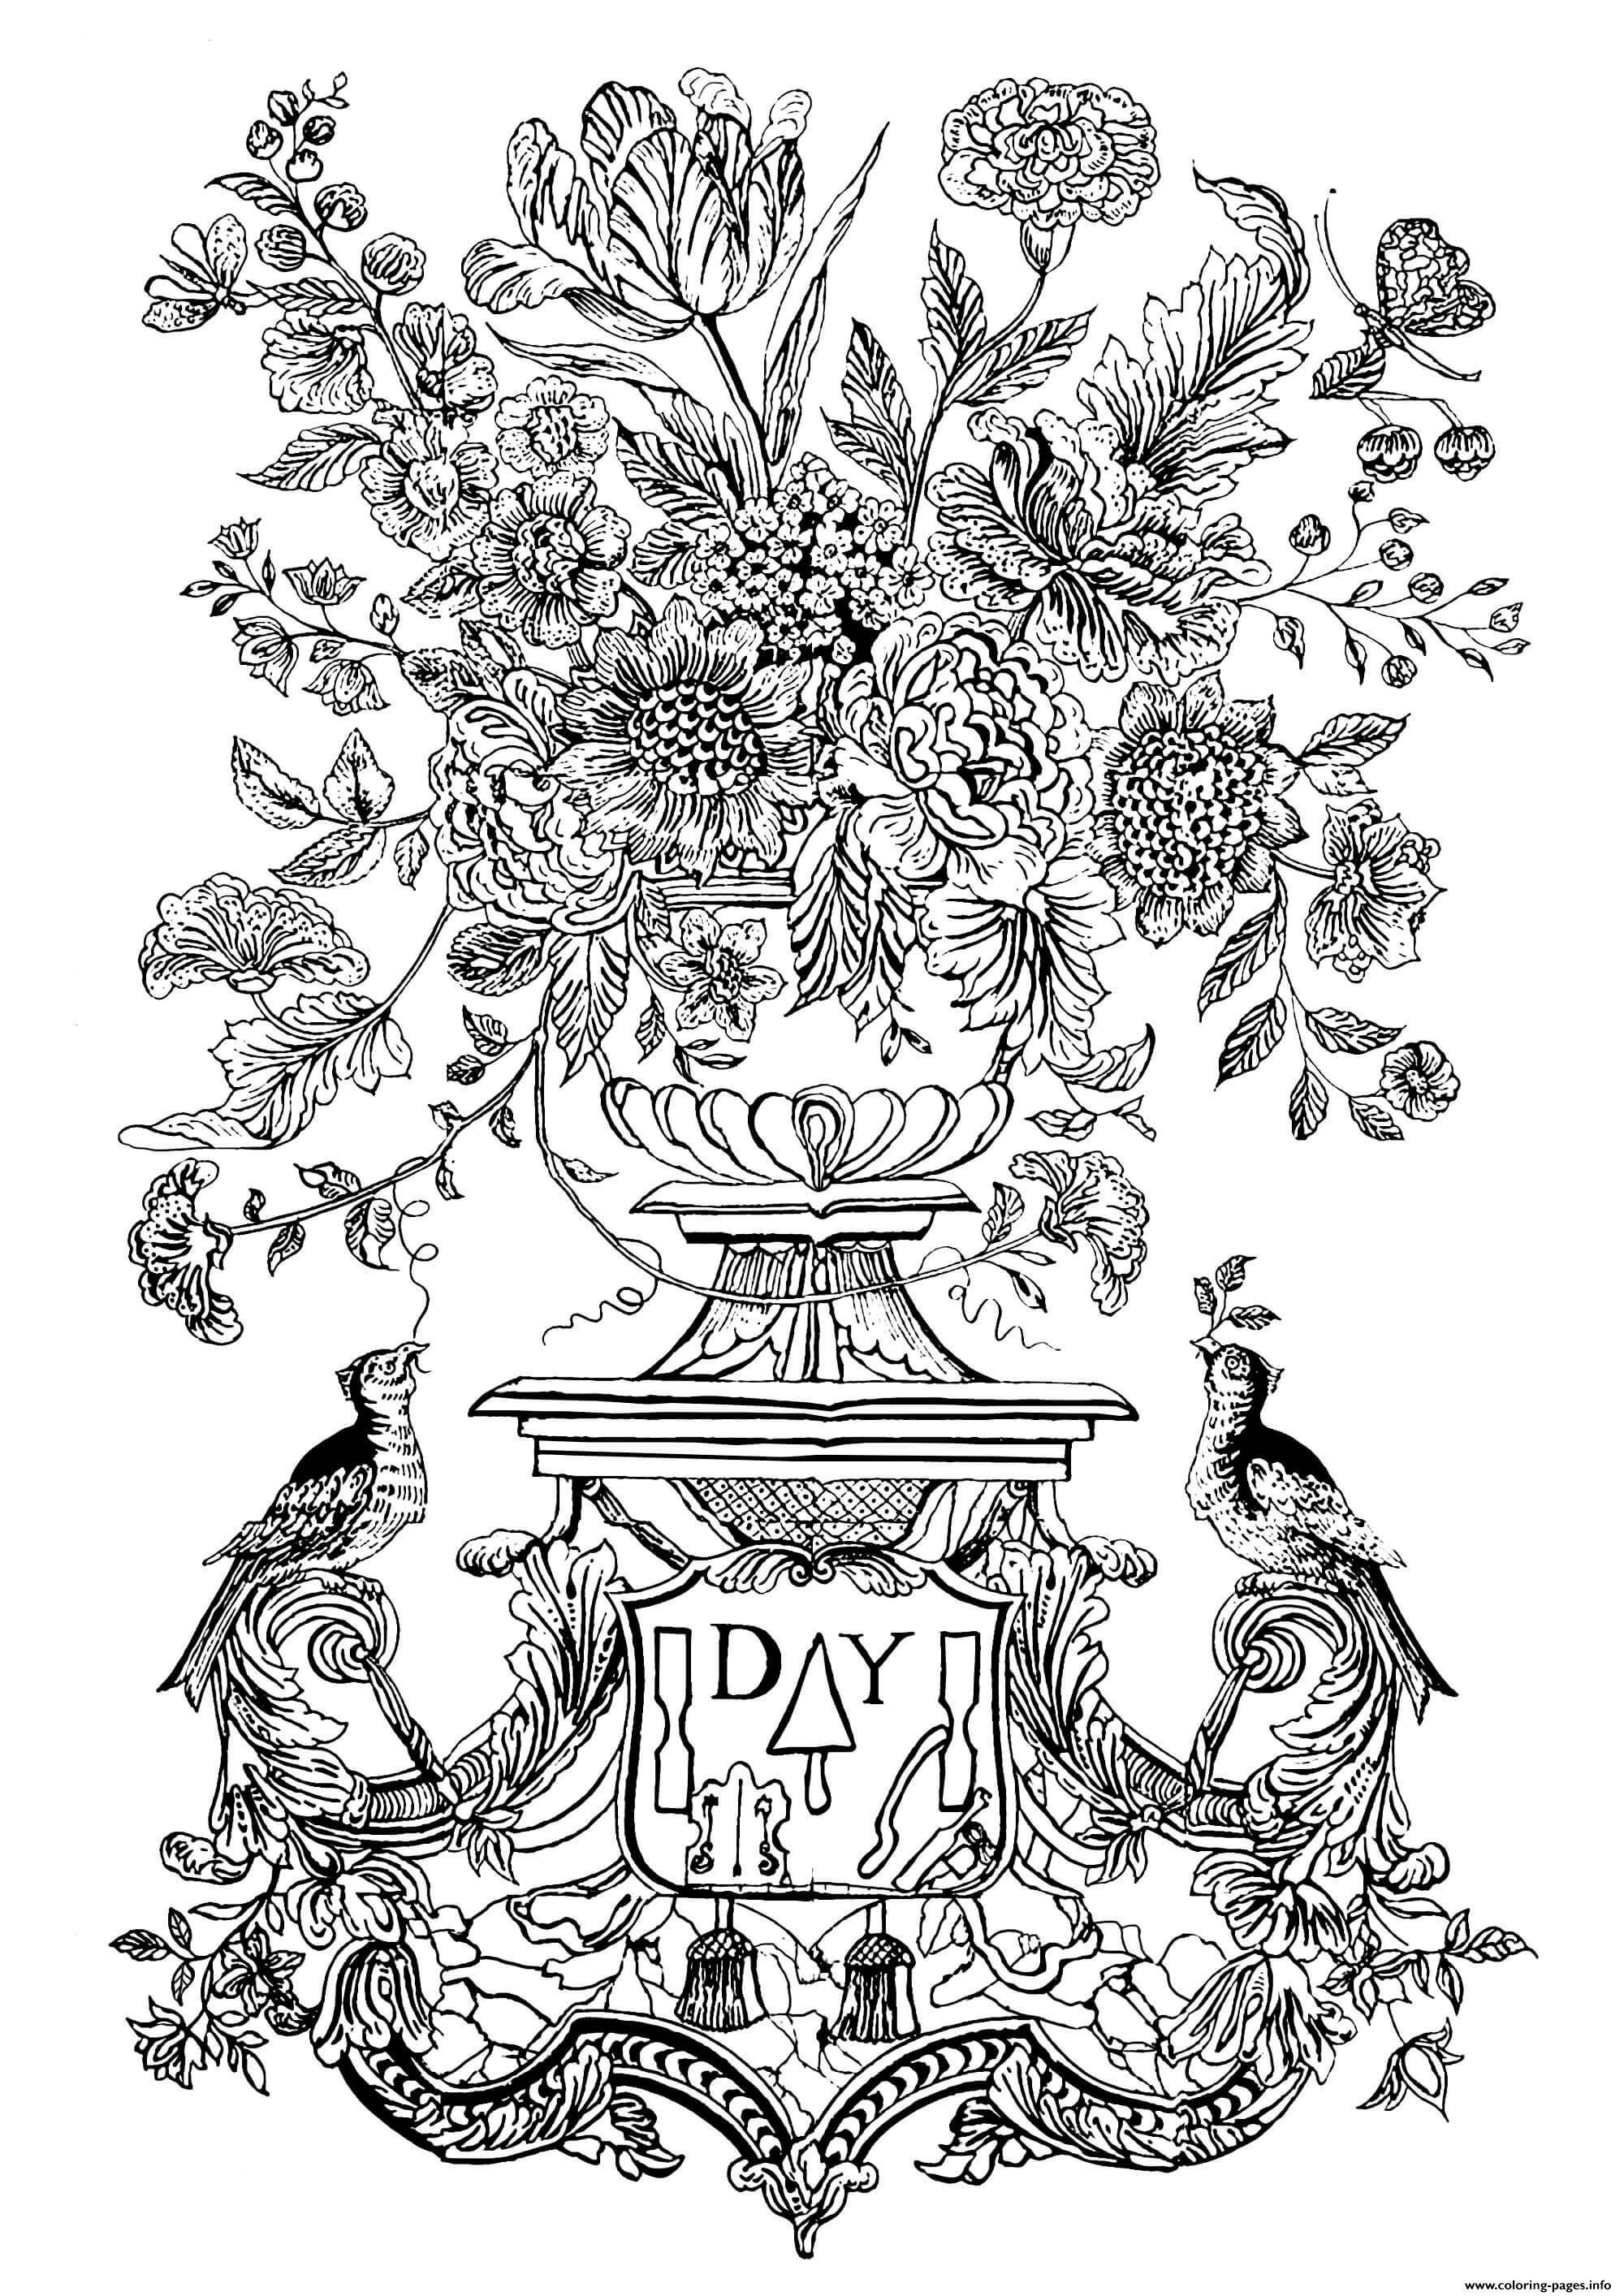 photo about Printable Mural identified as Complicated Flower Vase And Birds 1740 Mural Tile Coloring Internet pages